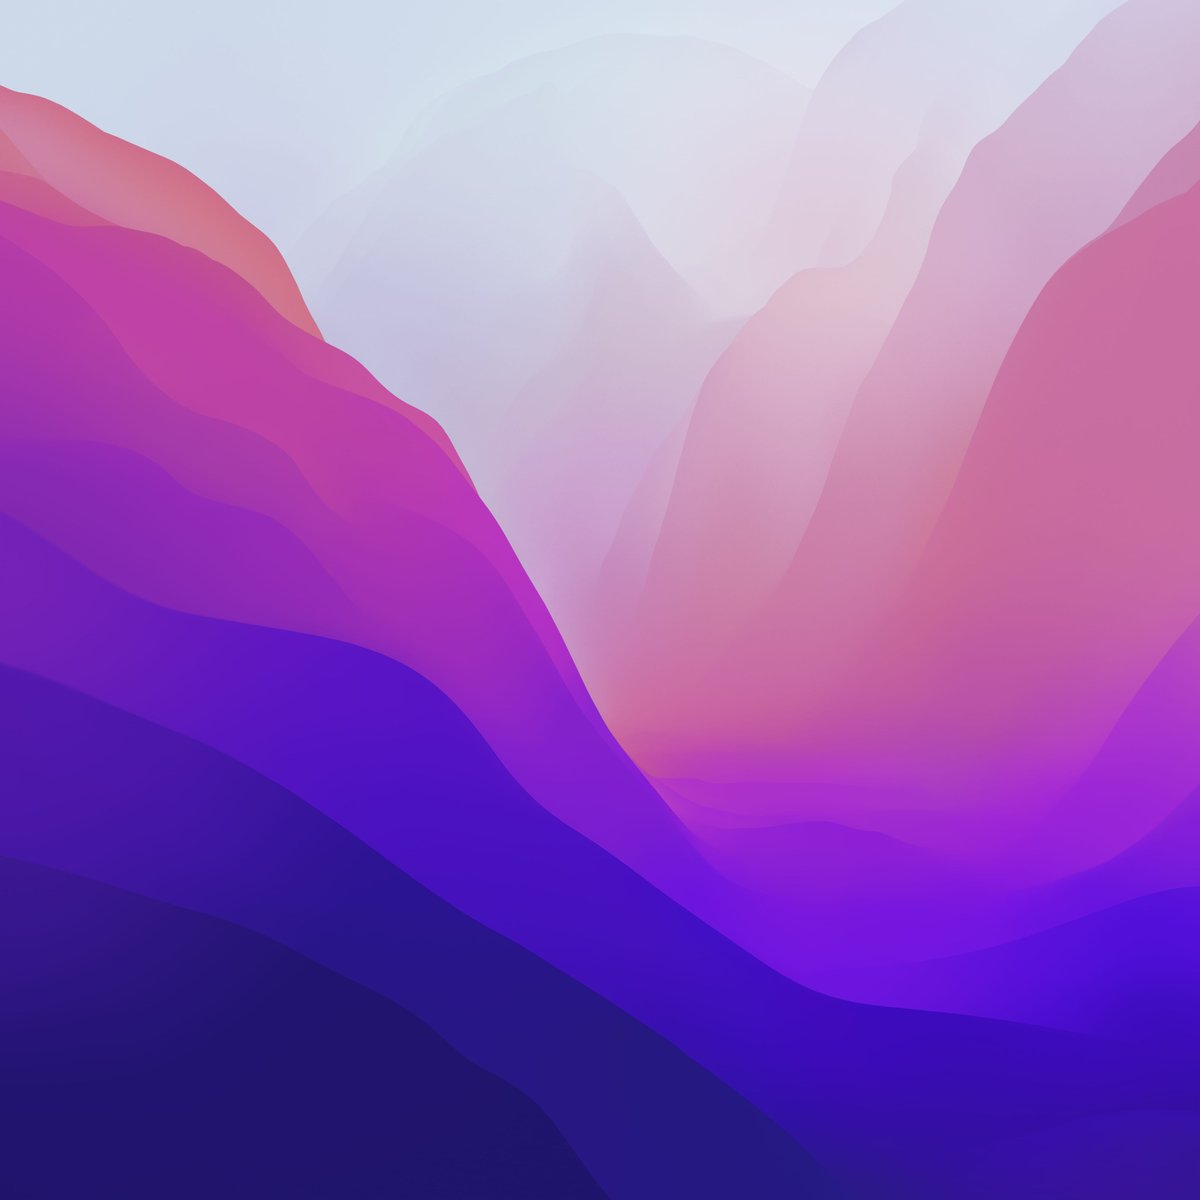 Hd wallpapers and background images Rob Hope On Twitter Download The Macos Monterey 5k Wallpaper Beta Over At 512px Https T Co 3idrqrlg5z